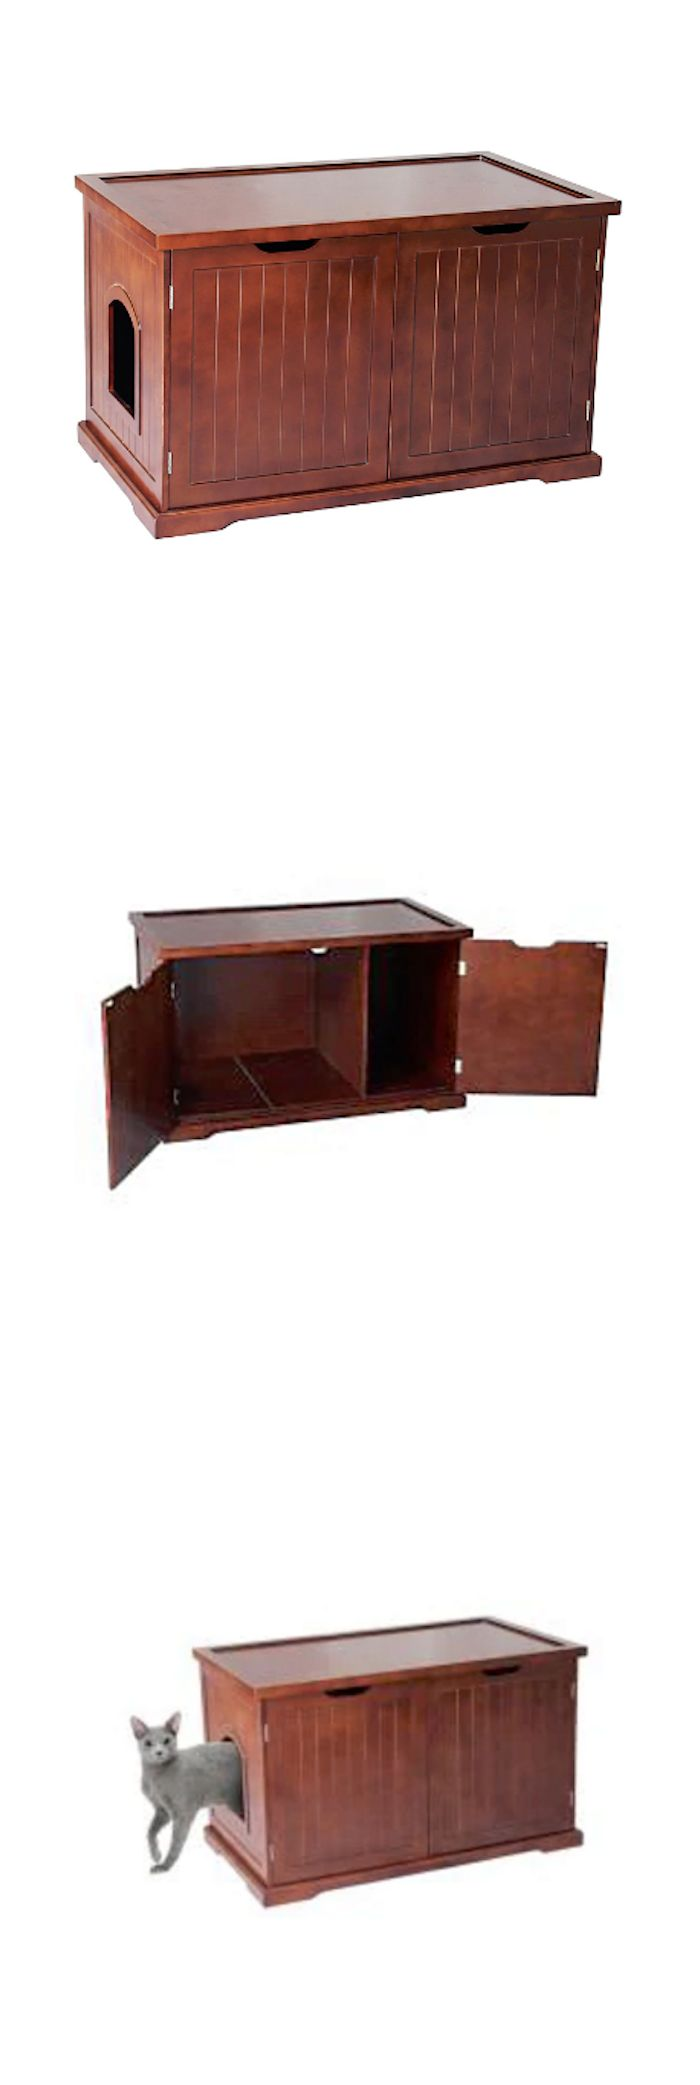 Litter Boxes 100411: Litter Box Furniture Cat Enclosed Extra Large Enclosure Cabinet Covered Kitty BUY IT NOW ONLY: $202.95